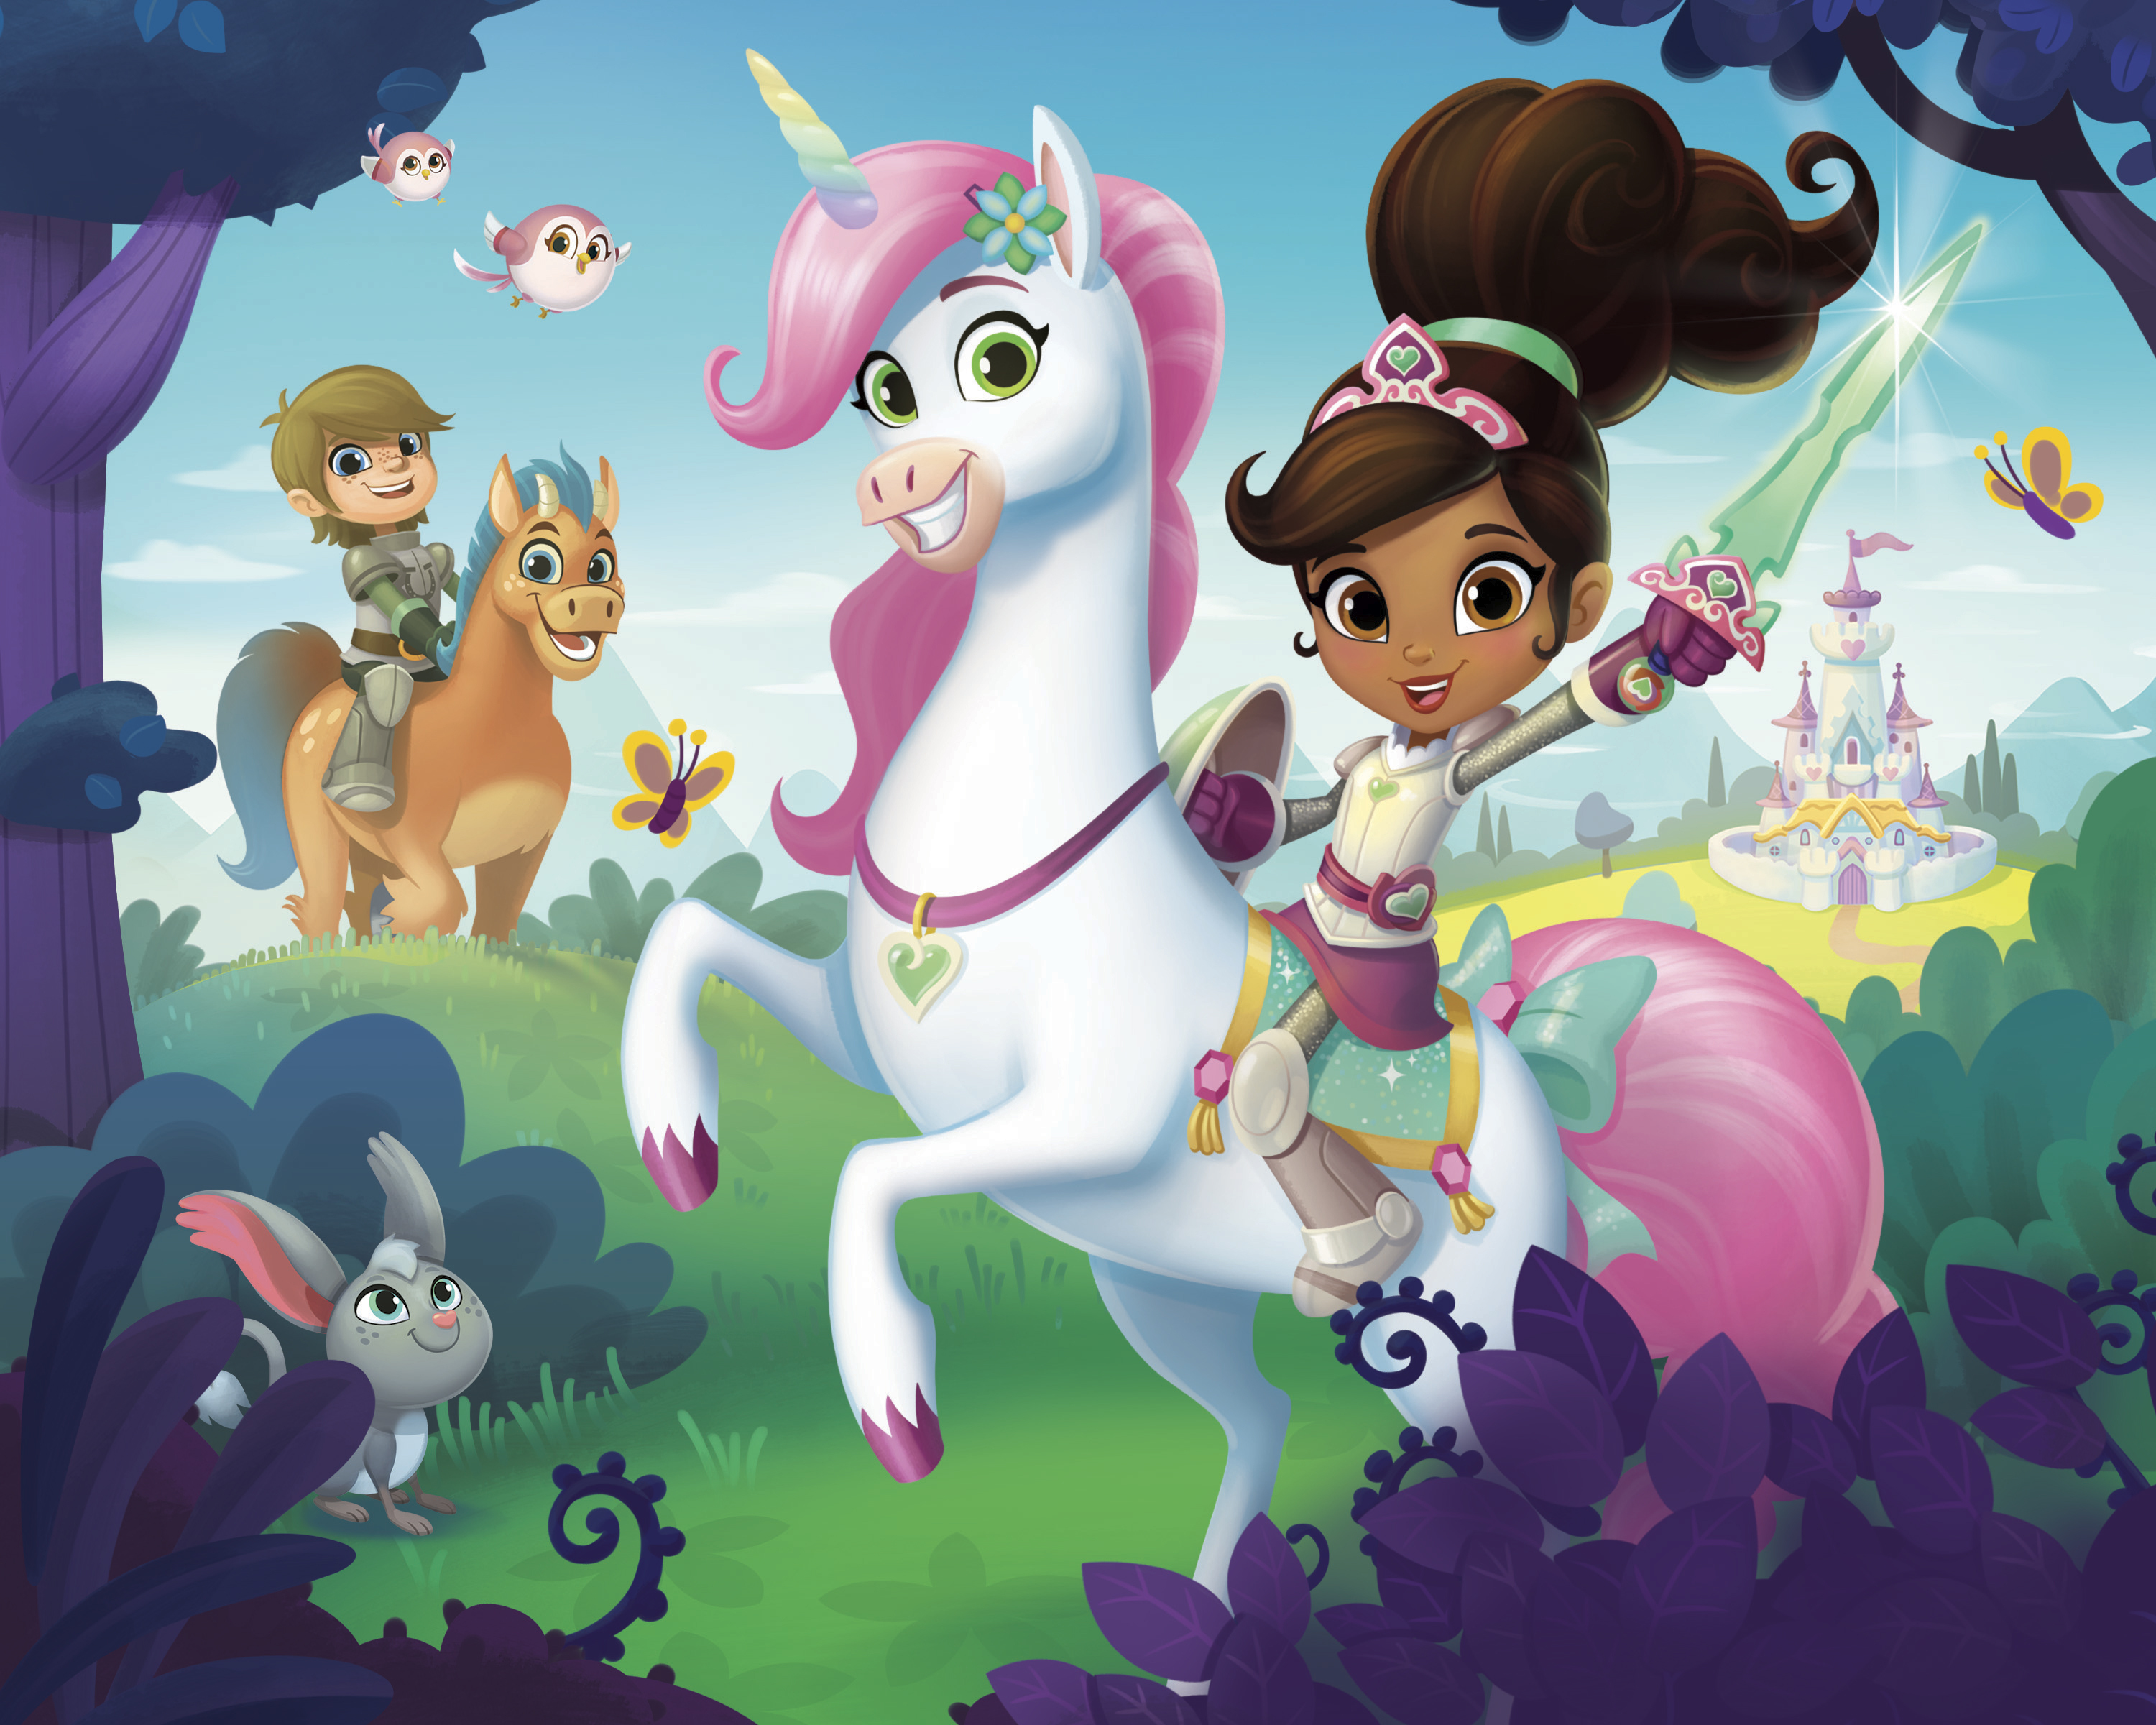 Nickelodeon Invites Preschoolers Along For Thrilling Adventures With An Unconventional Princess In Nella The Knight Brand New Animated Series